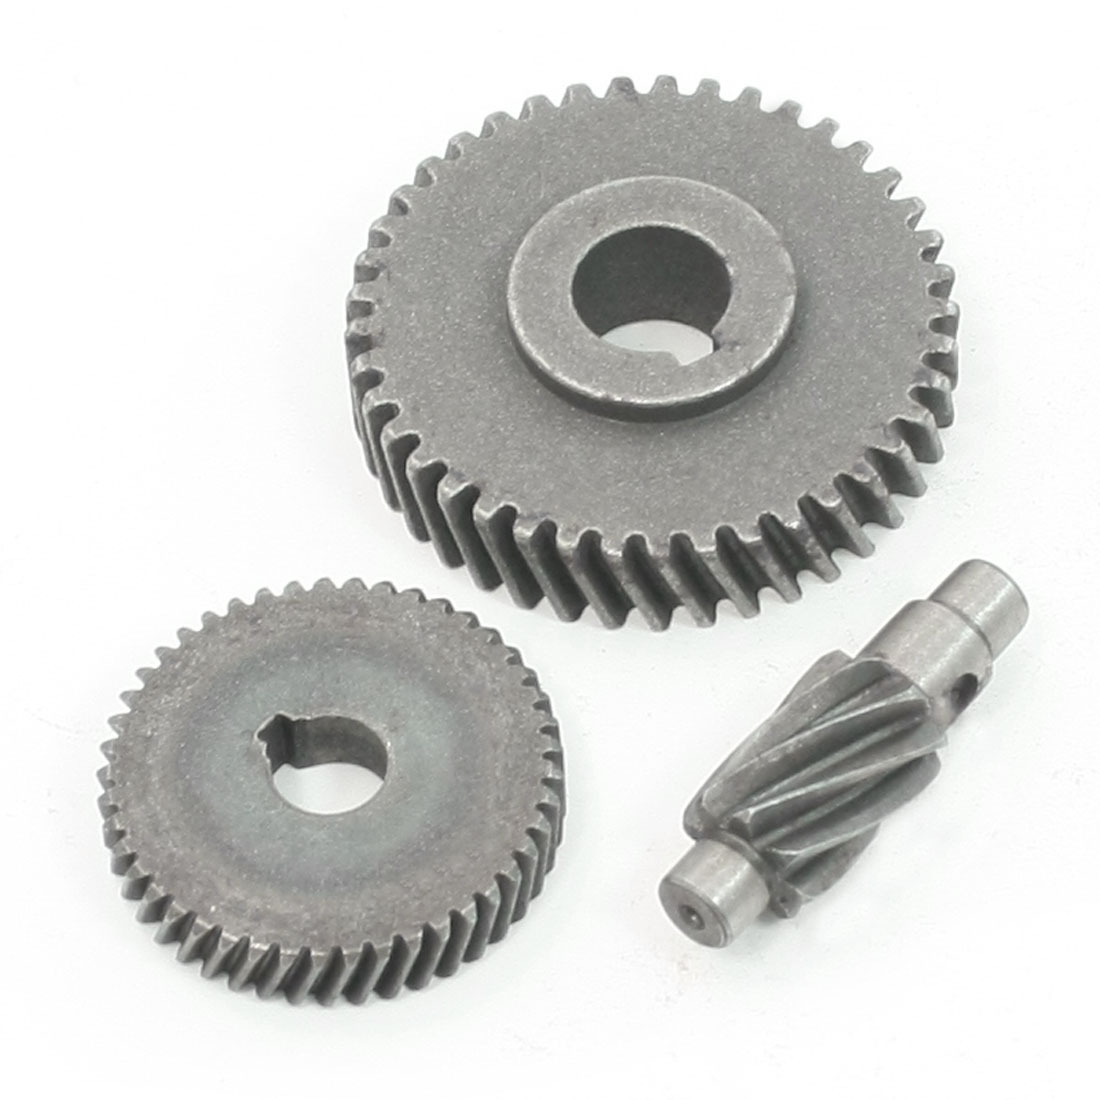 Replacement Part 8 Teeth Pinion Helical Gear Set for Boda 16 Electric Drill